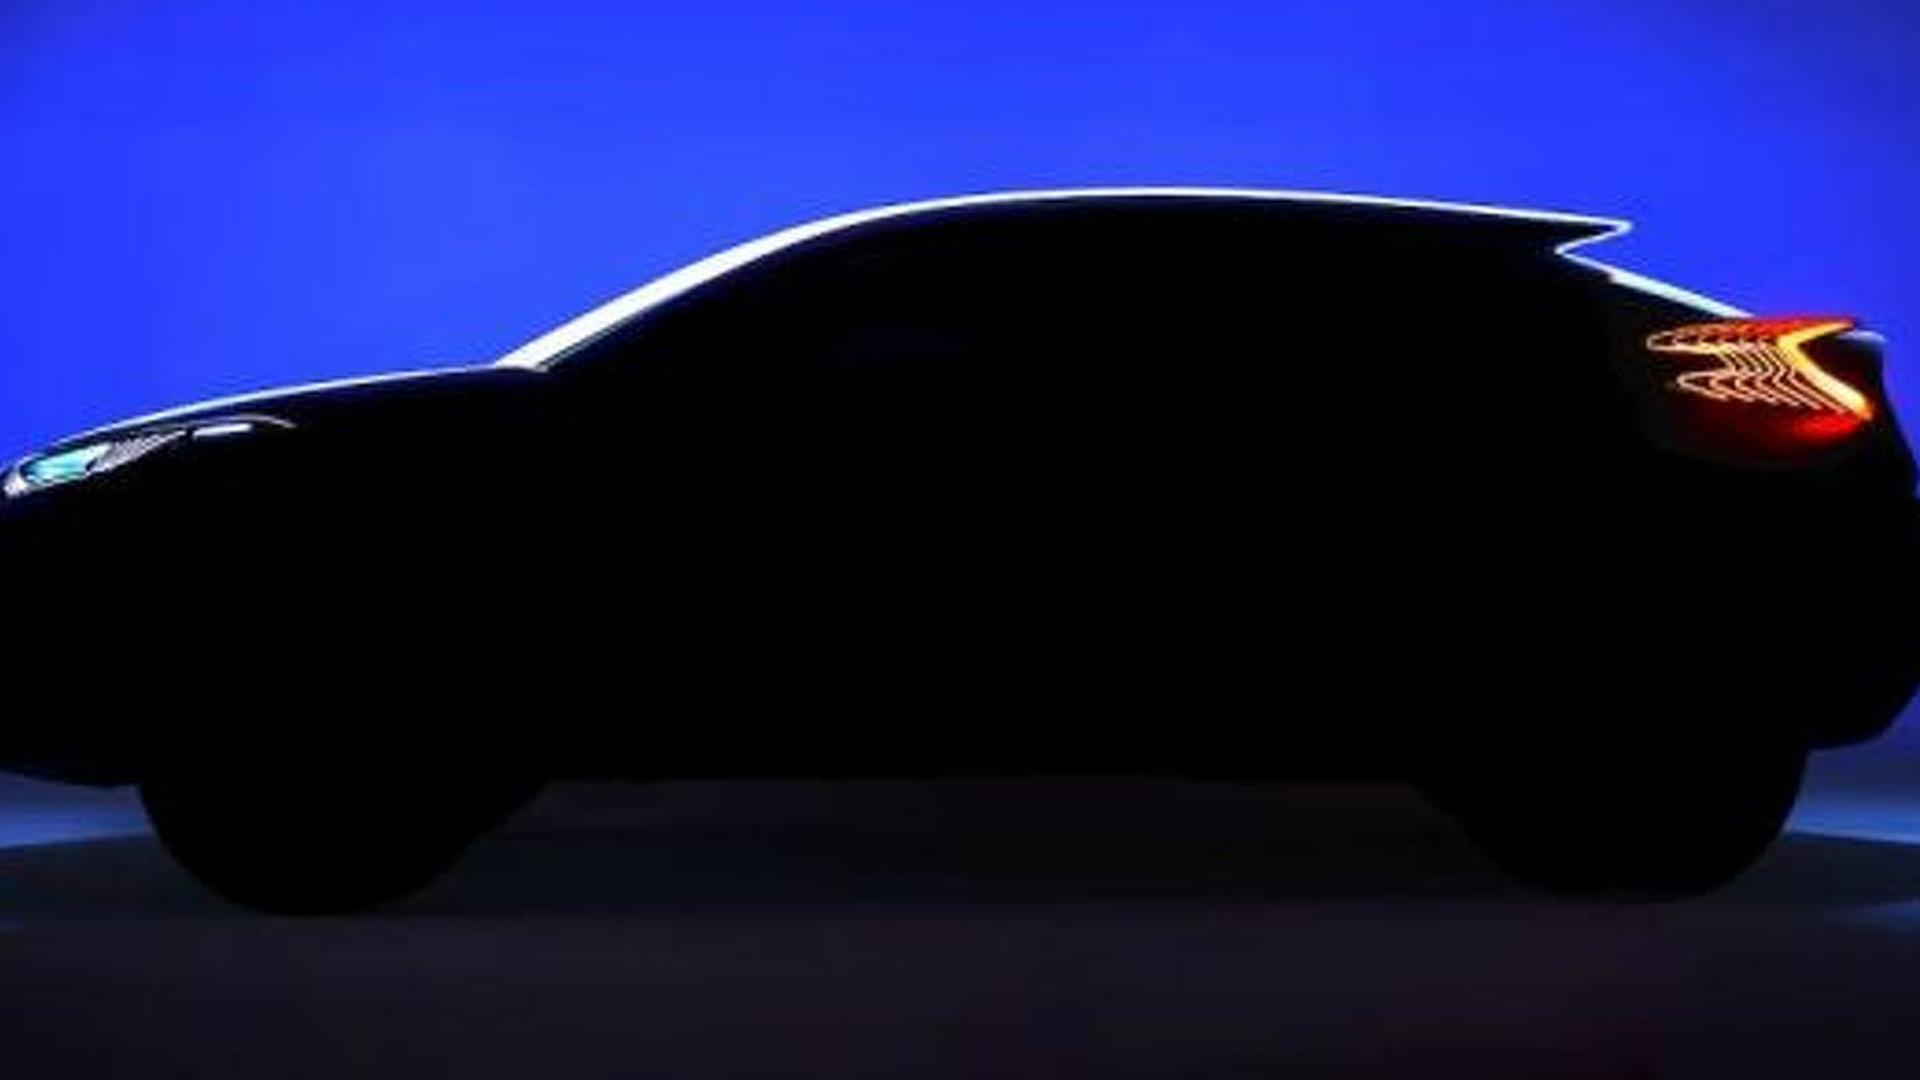 Toyota C-HR teased ahead of Paris Motor Show debut